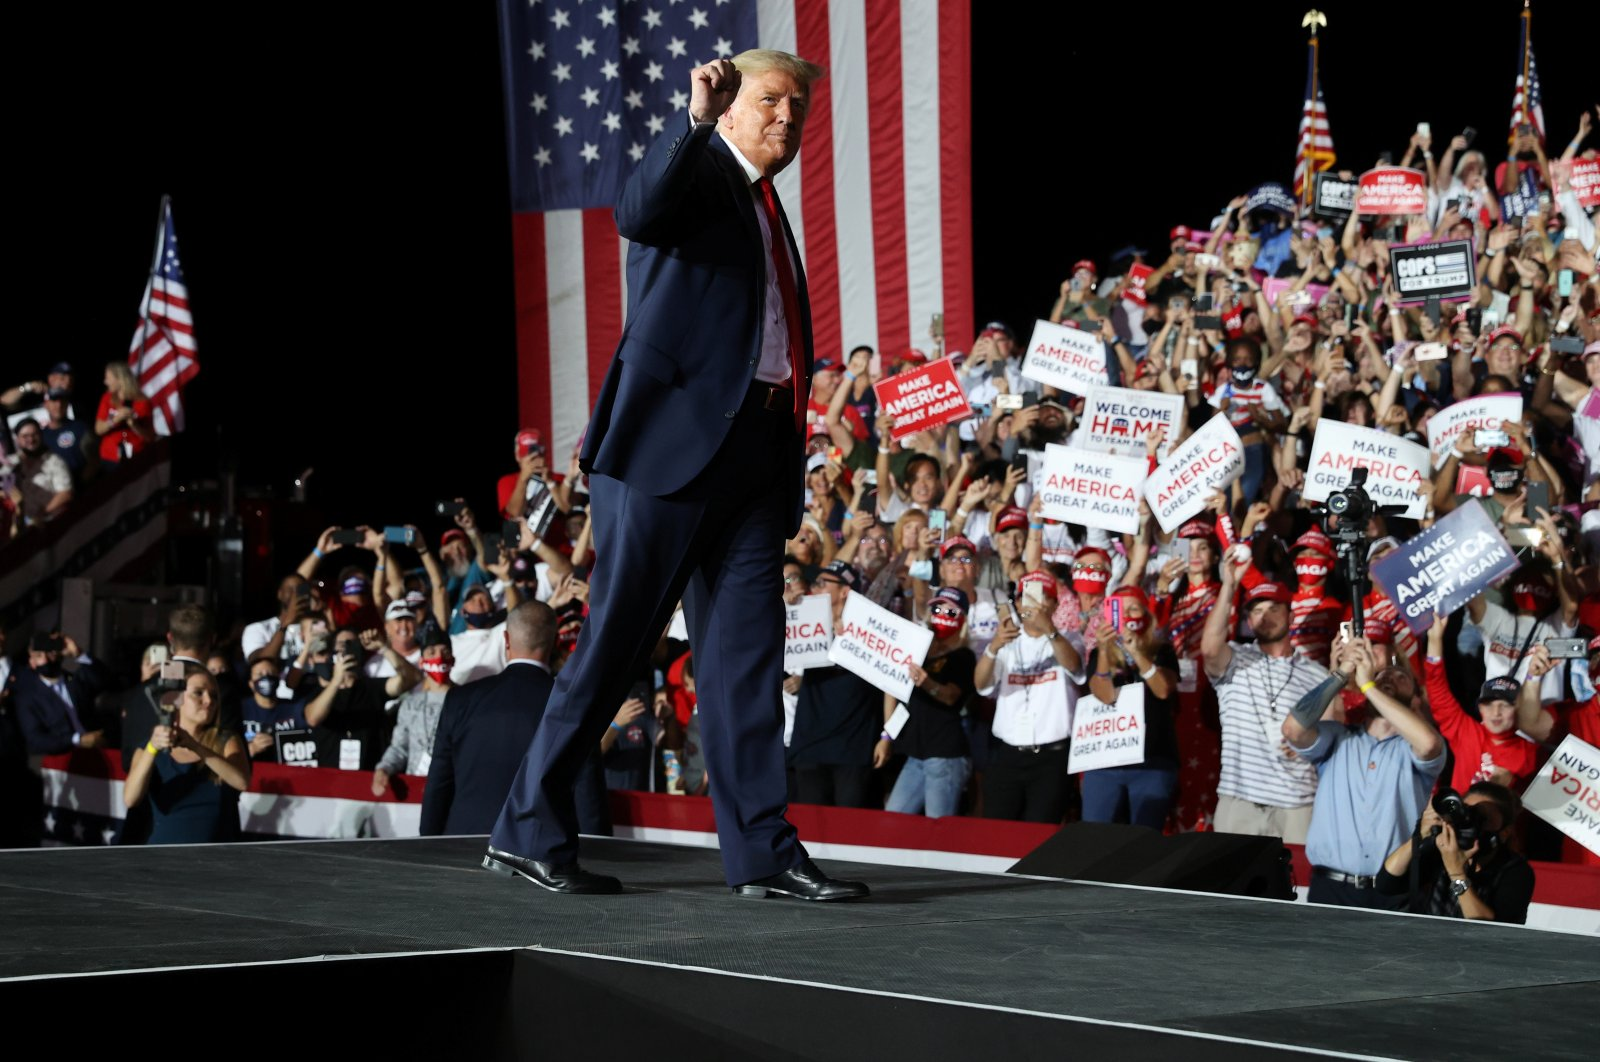 U.S. President Donald Trump departs at the end of a campaign rally, his first since being treated for the coronavirus disease (COVID-19), at Orlando Sanford International Airport in Sanford, Florida, U.S., Oct. 12, 2020. (Reuters Photo)